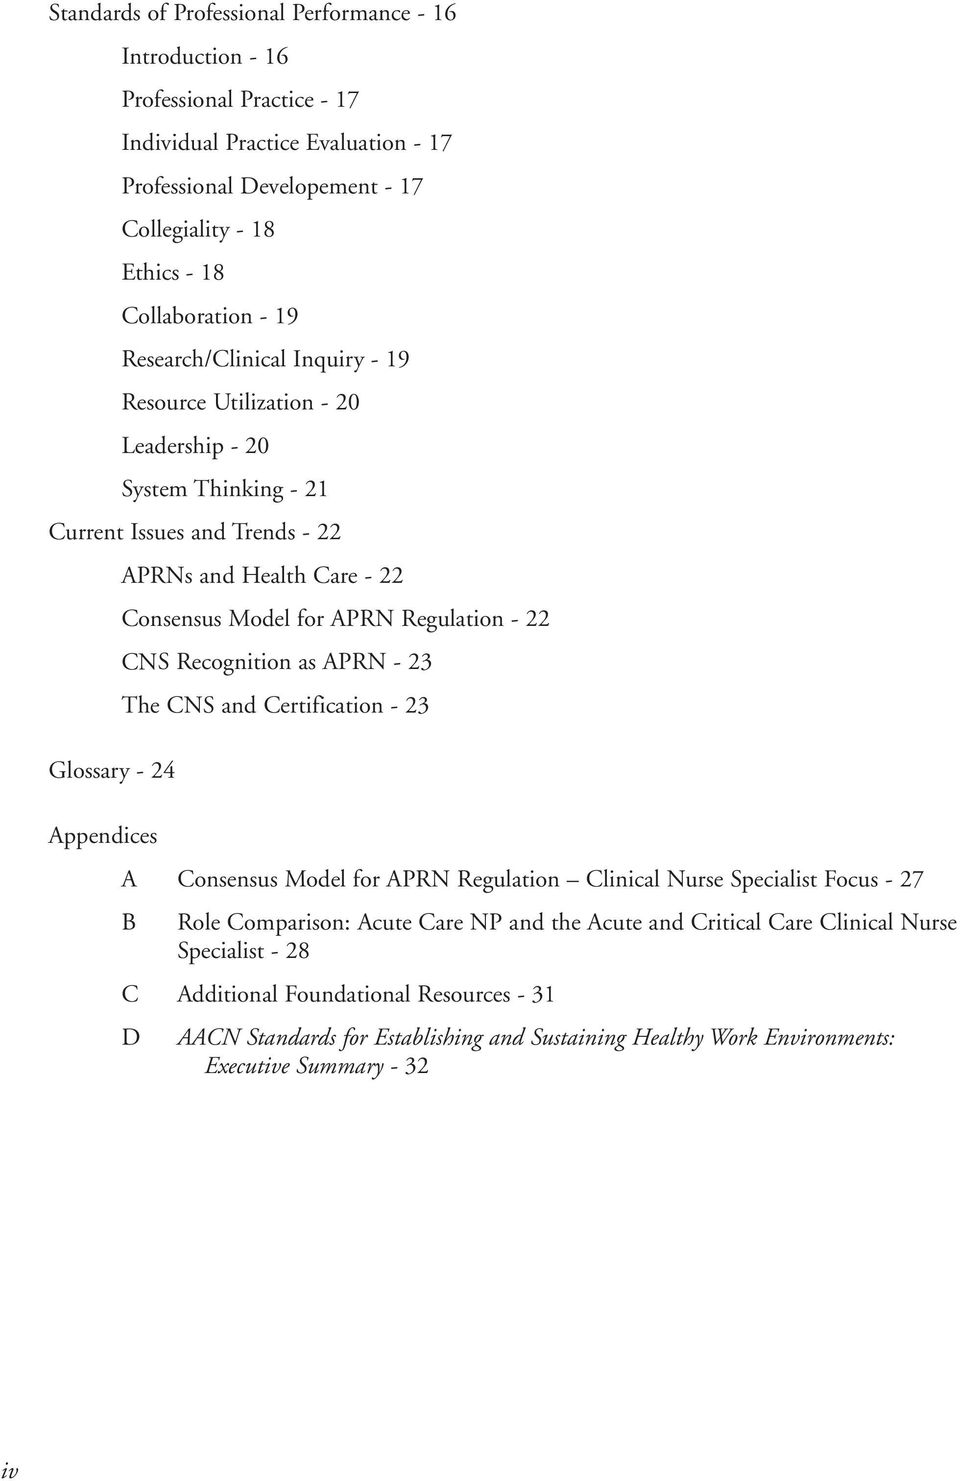 Regulation - 22 CNS Recognition as APRN - 23 The CNS and Certification - 23 Appendices A Consensus Model for APRN Regulation Clinical Nurse Specialist Focus - 27 B Role Comparison: Acute Care NP and